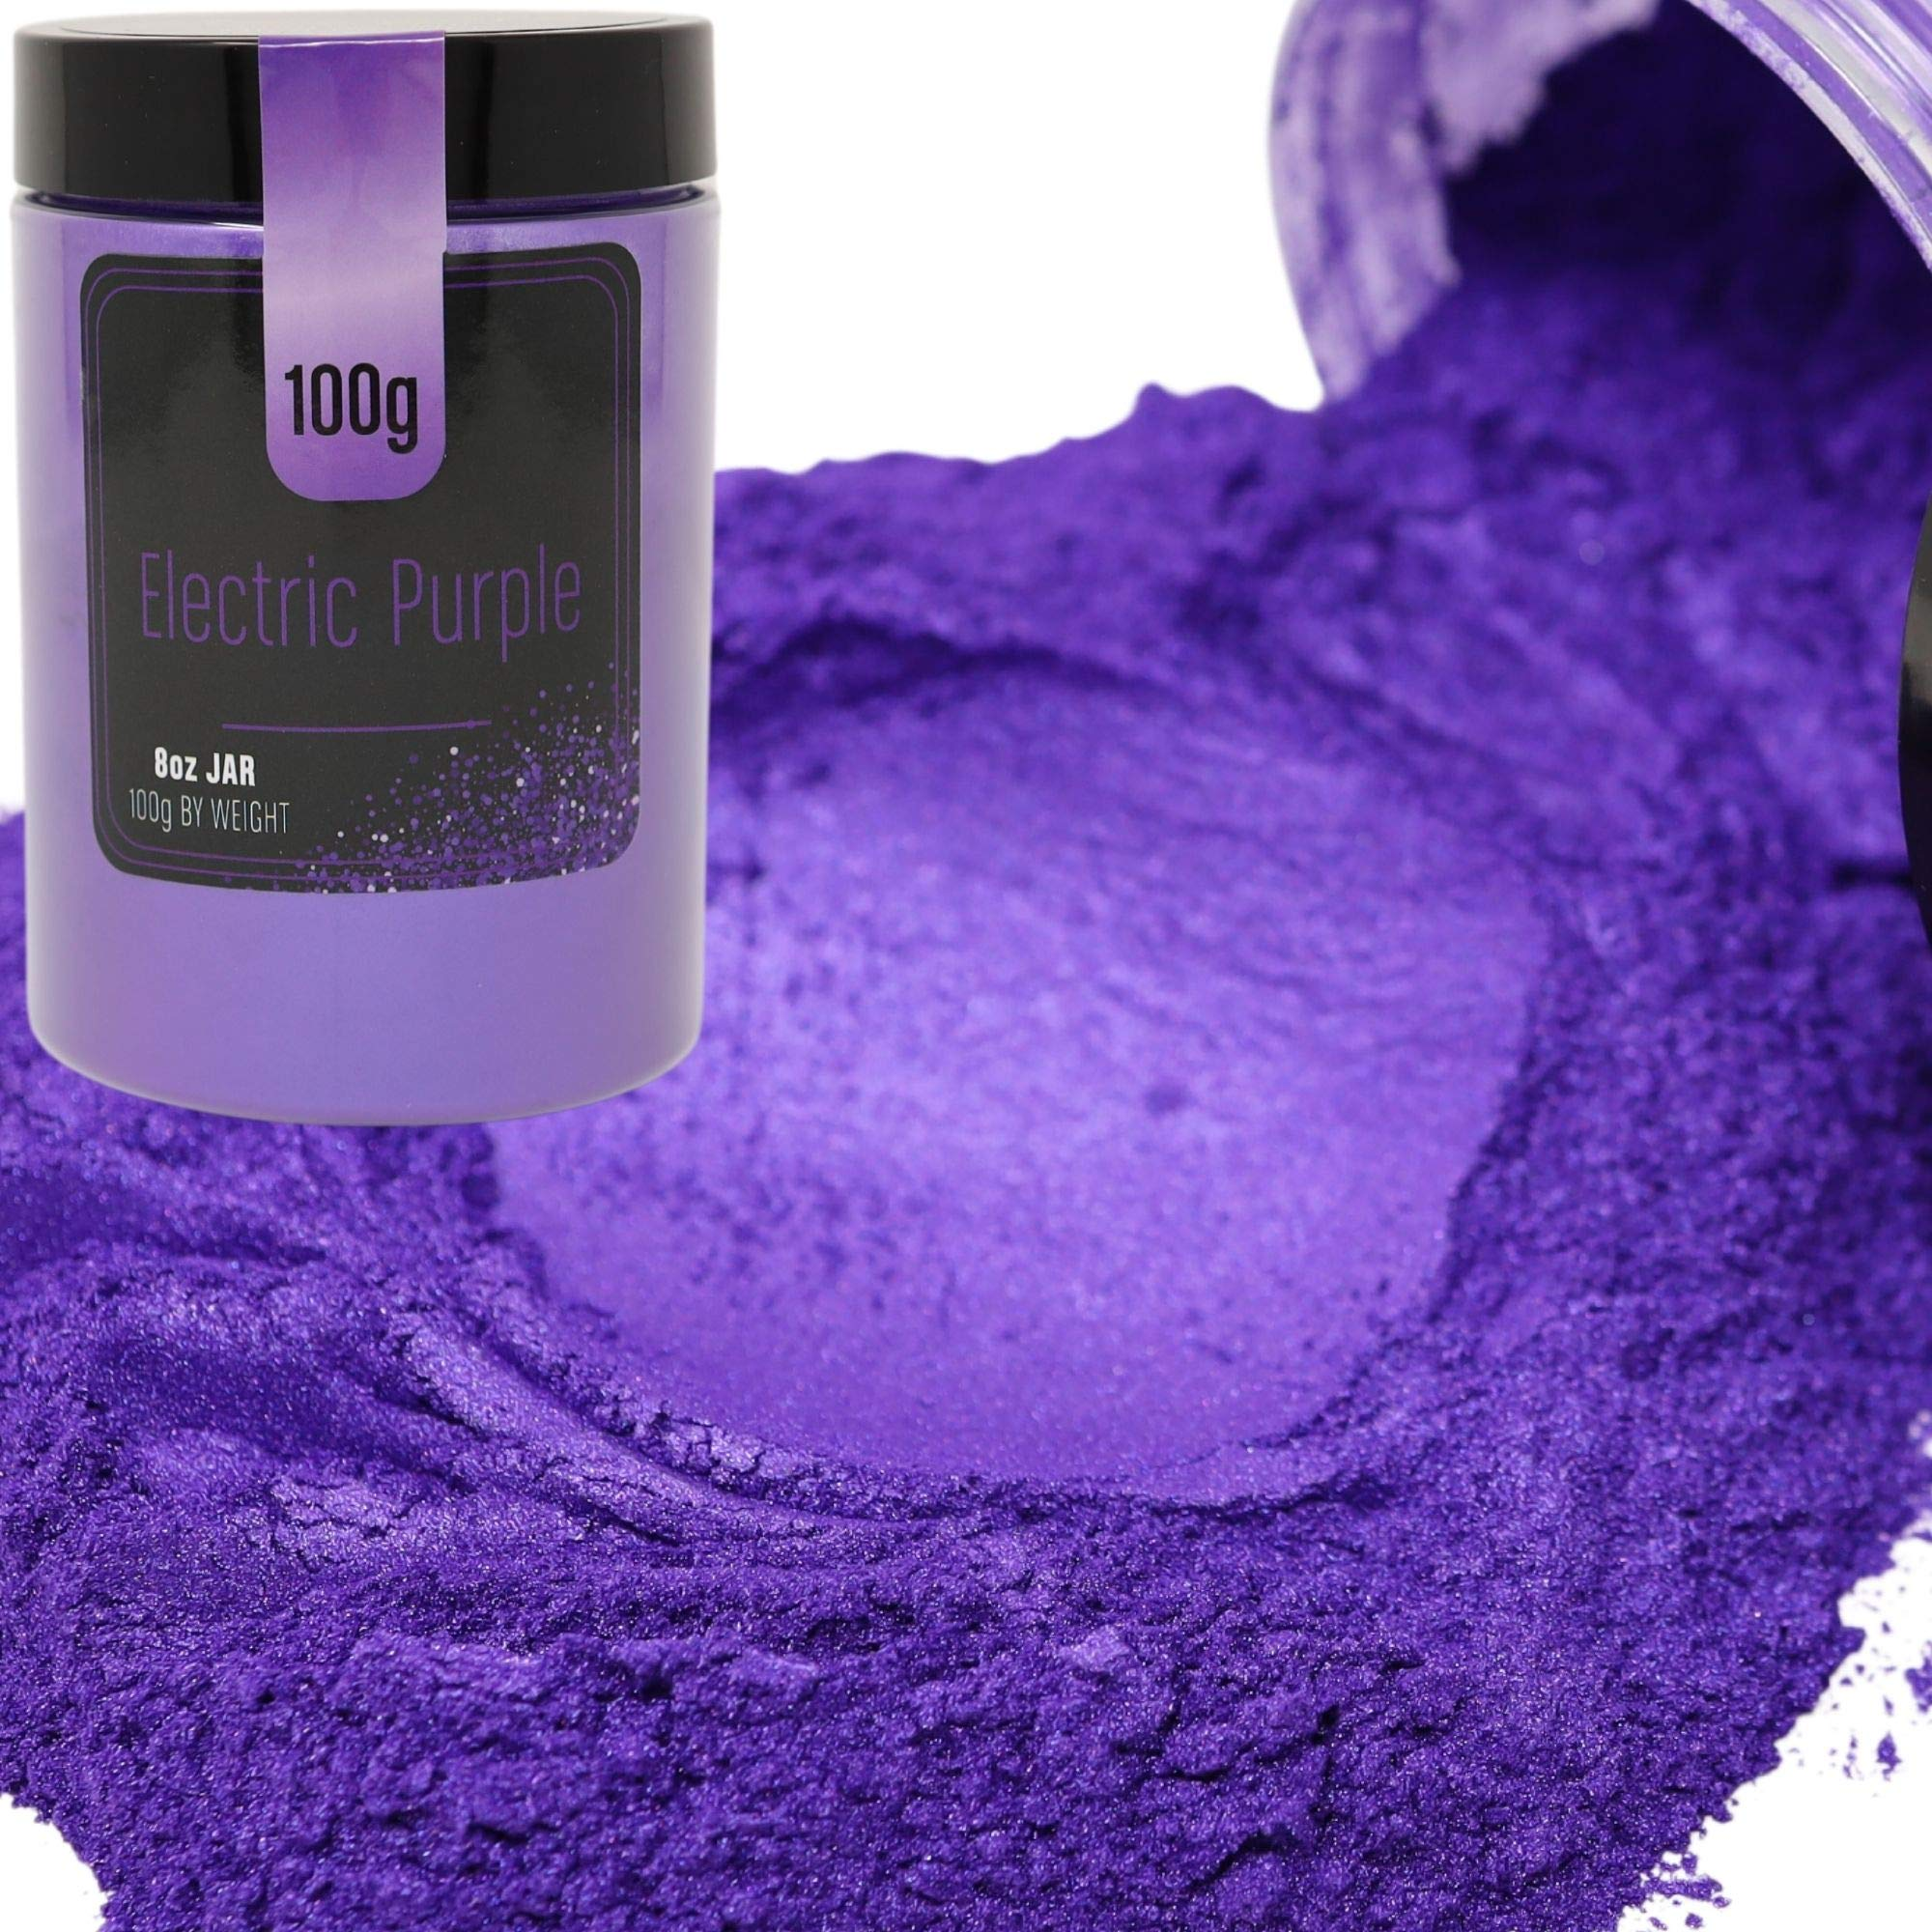 FIREDOTS Electric Purple Mica Powder, Massive 100 Gram Pot of True Cosmetic Grade Mica with Pearlescent Effect, 100% Pure for Artists Working in Resin Art, Epoxy, Concrete, Soaps, and Cosmetics